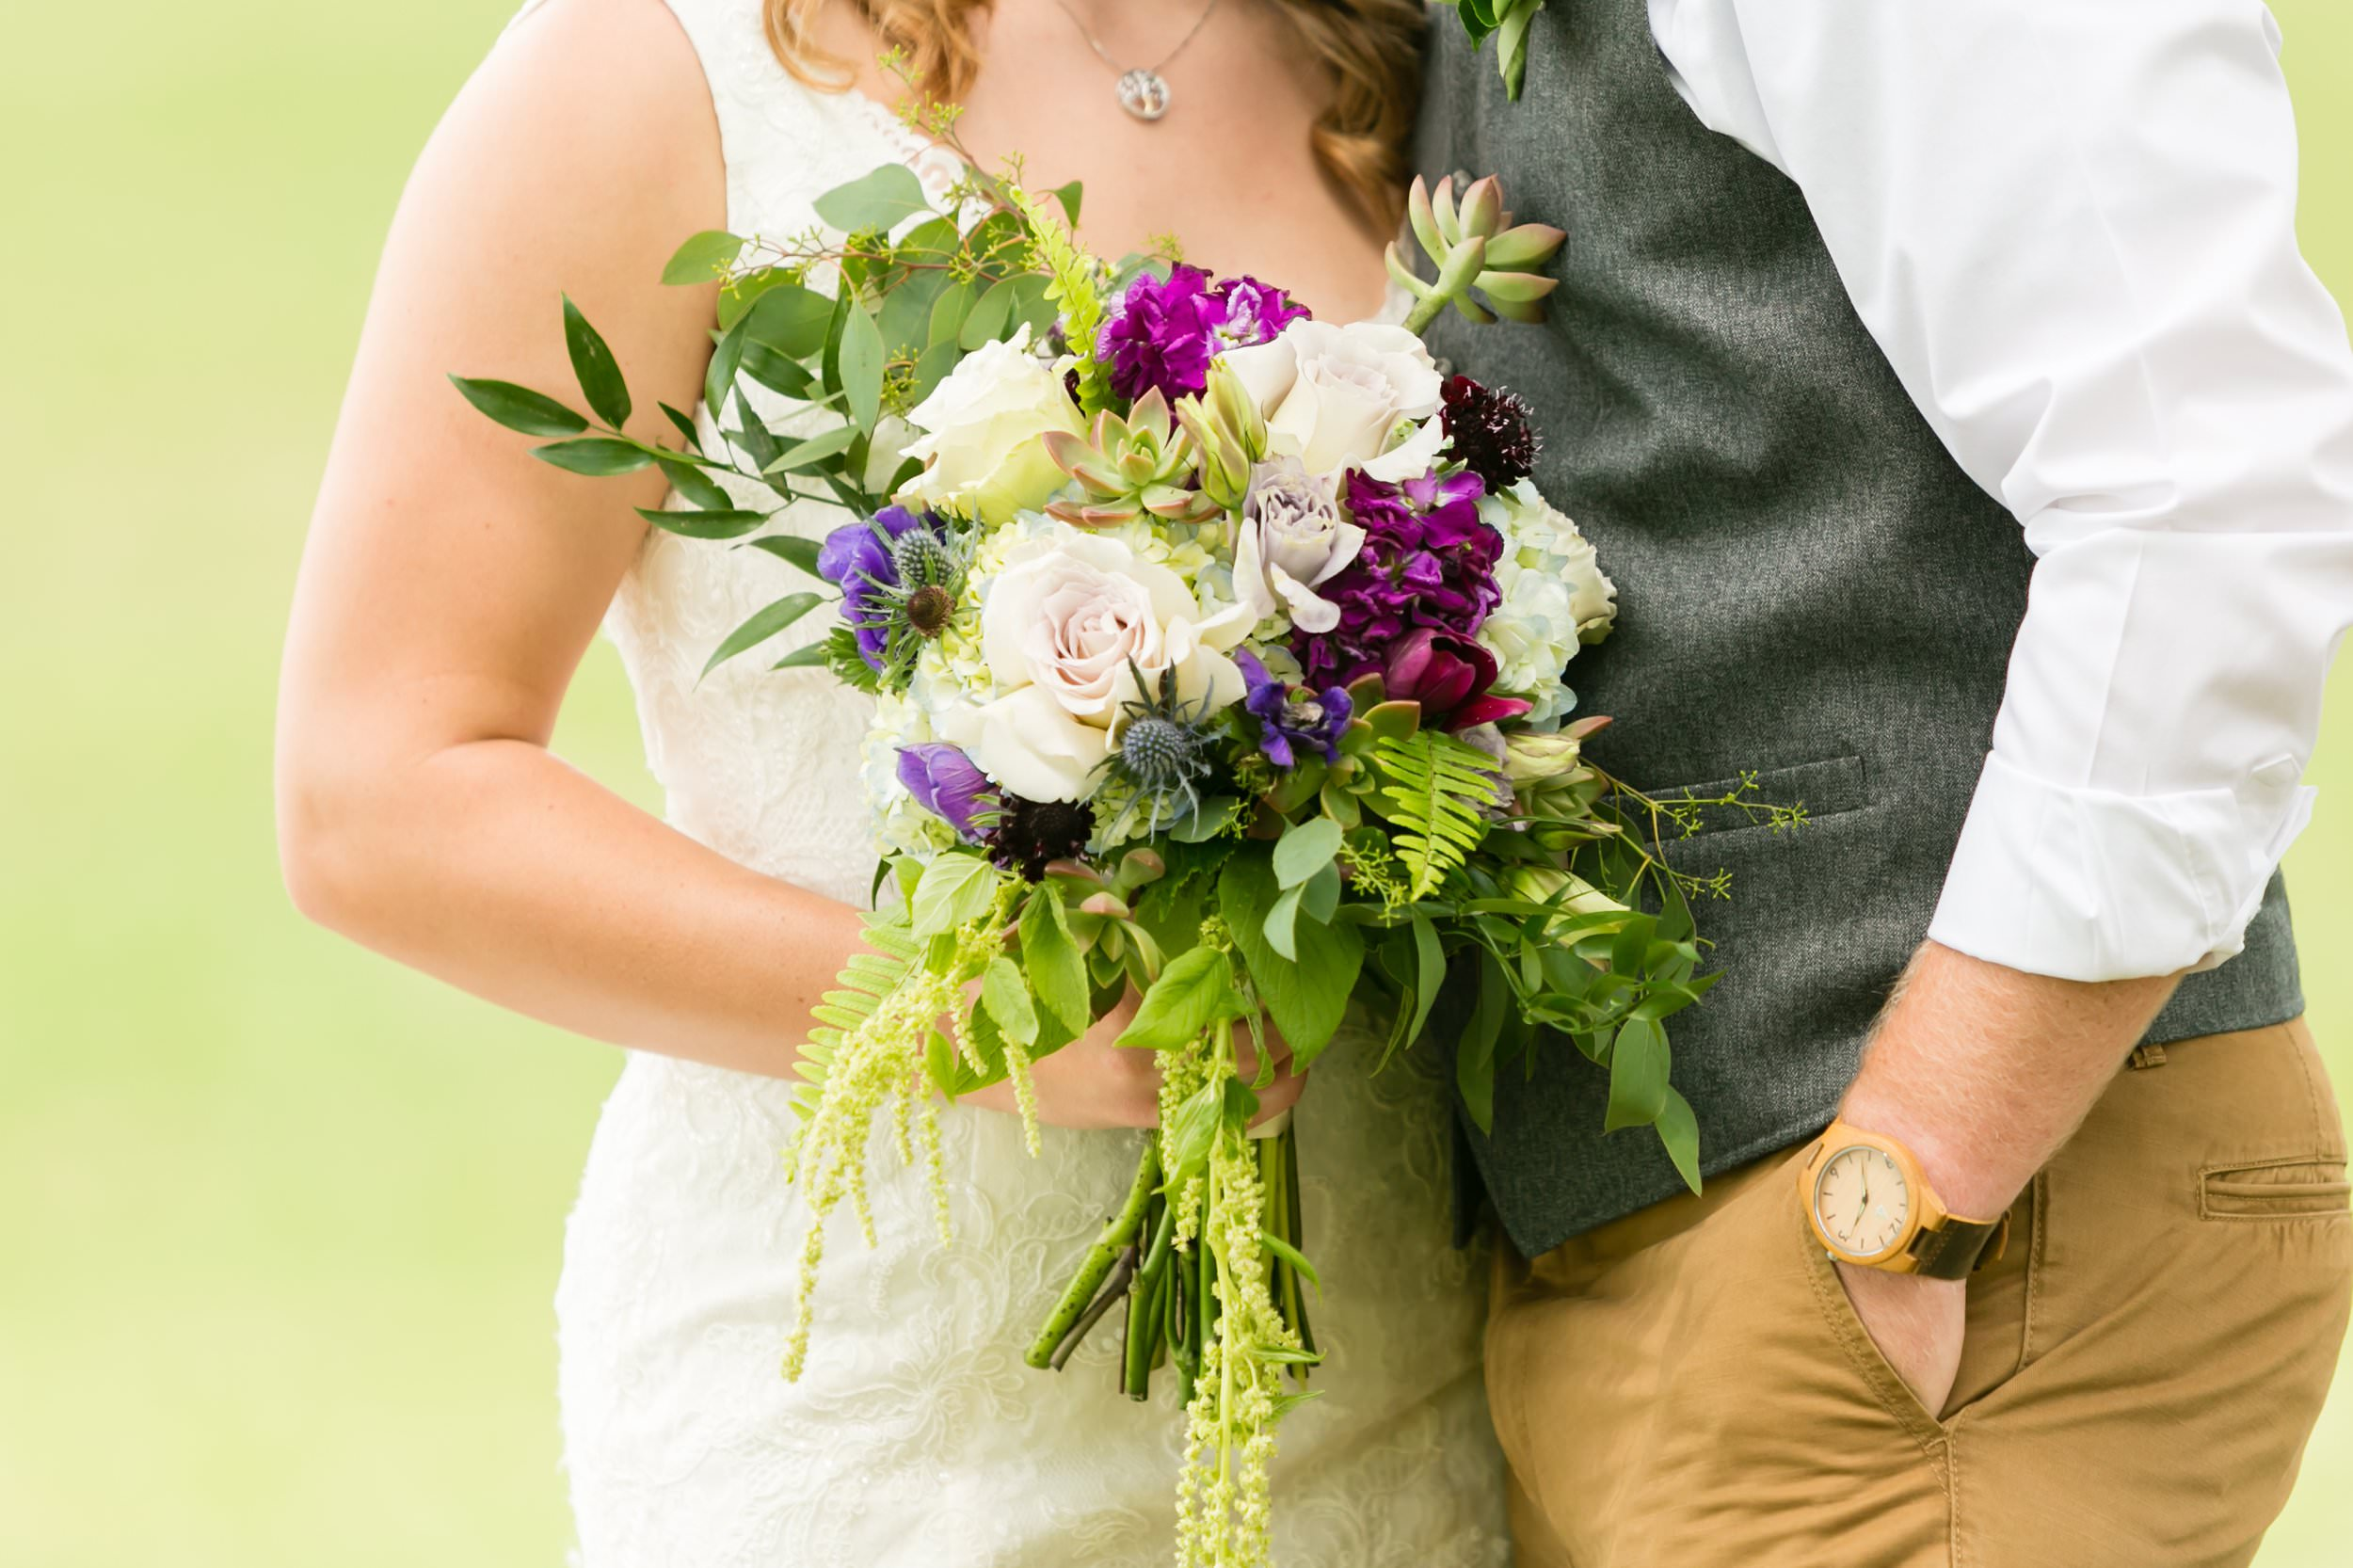 This purple, pink, and white bouquet was perfect for Douglas and Abigail's  rustic farm wedding at Abby Manor .